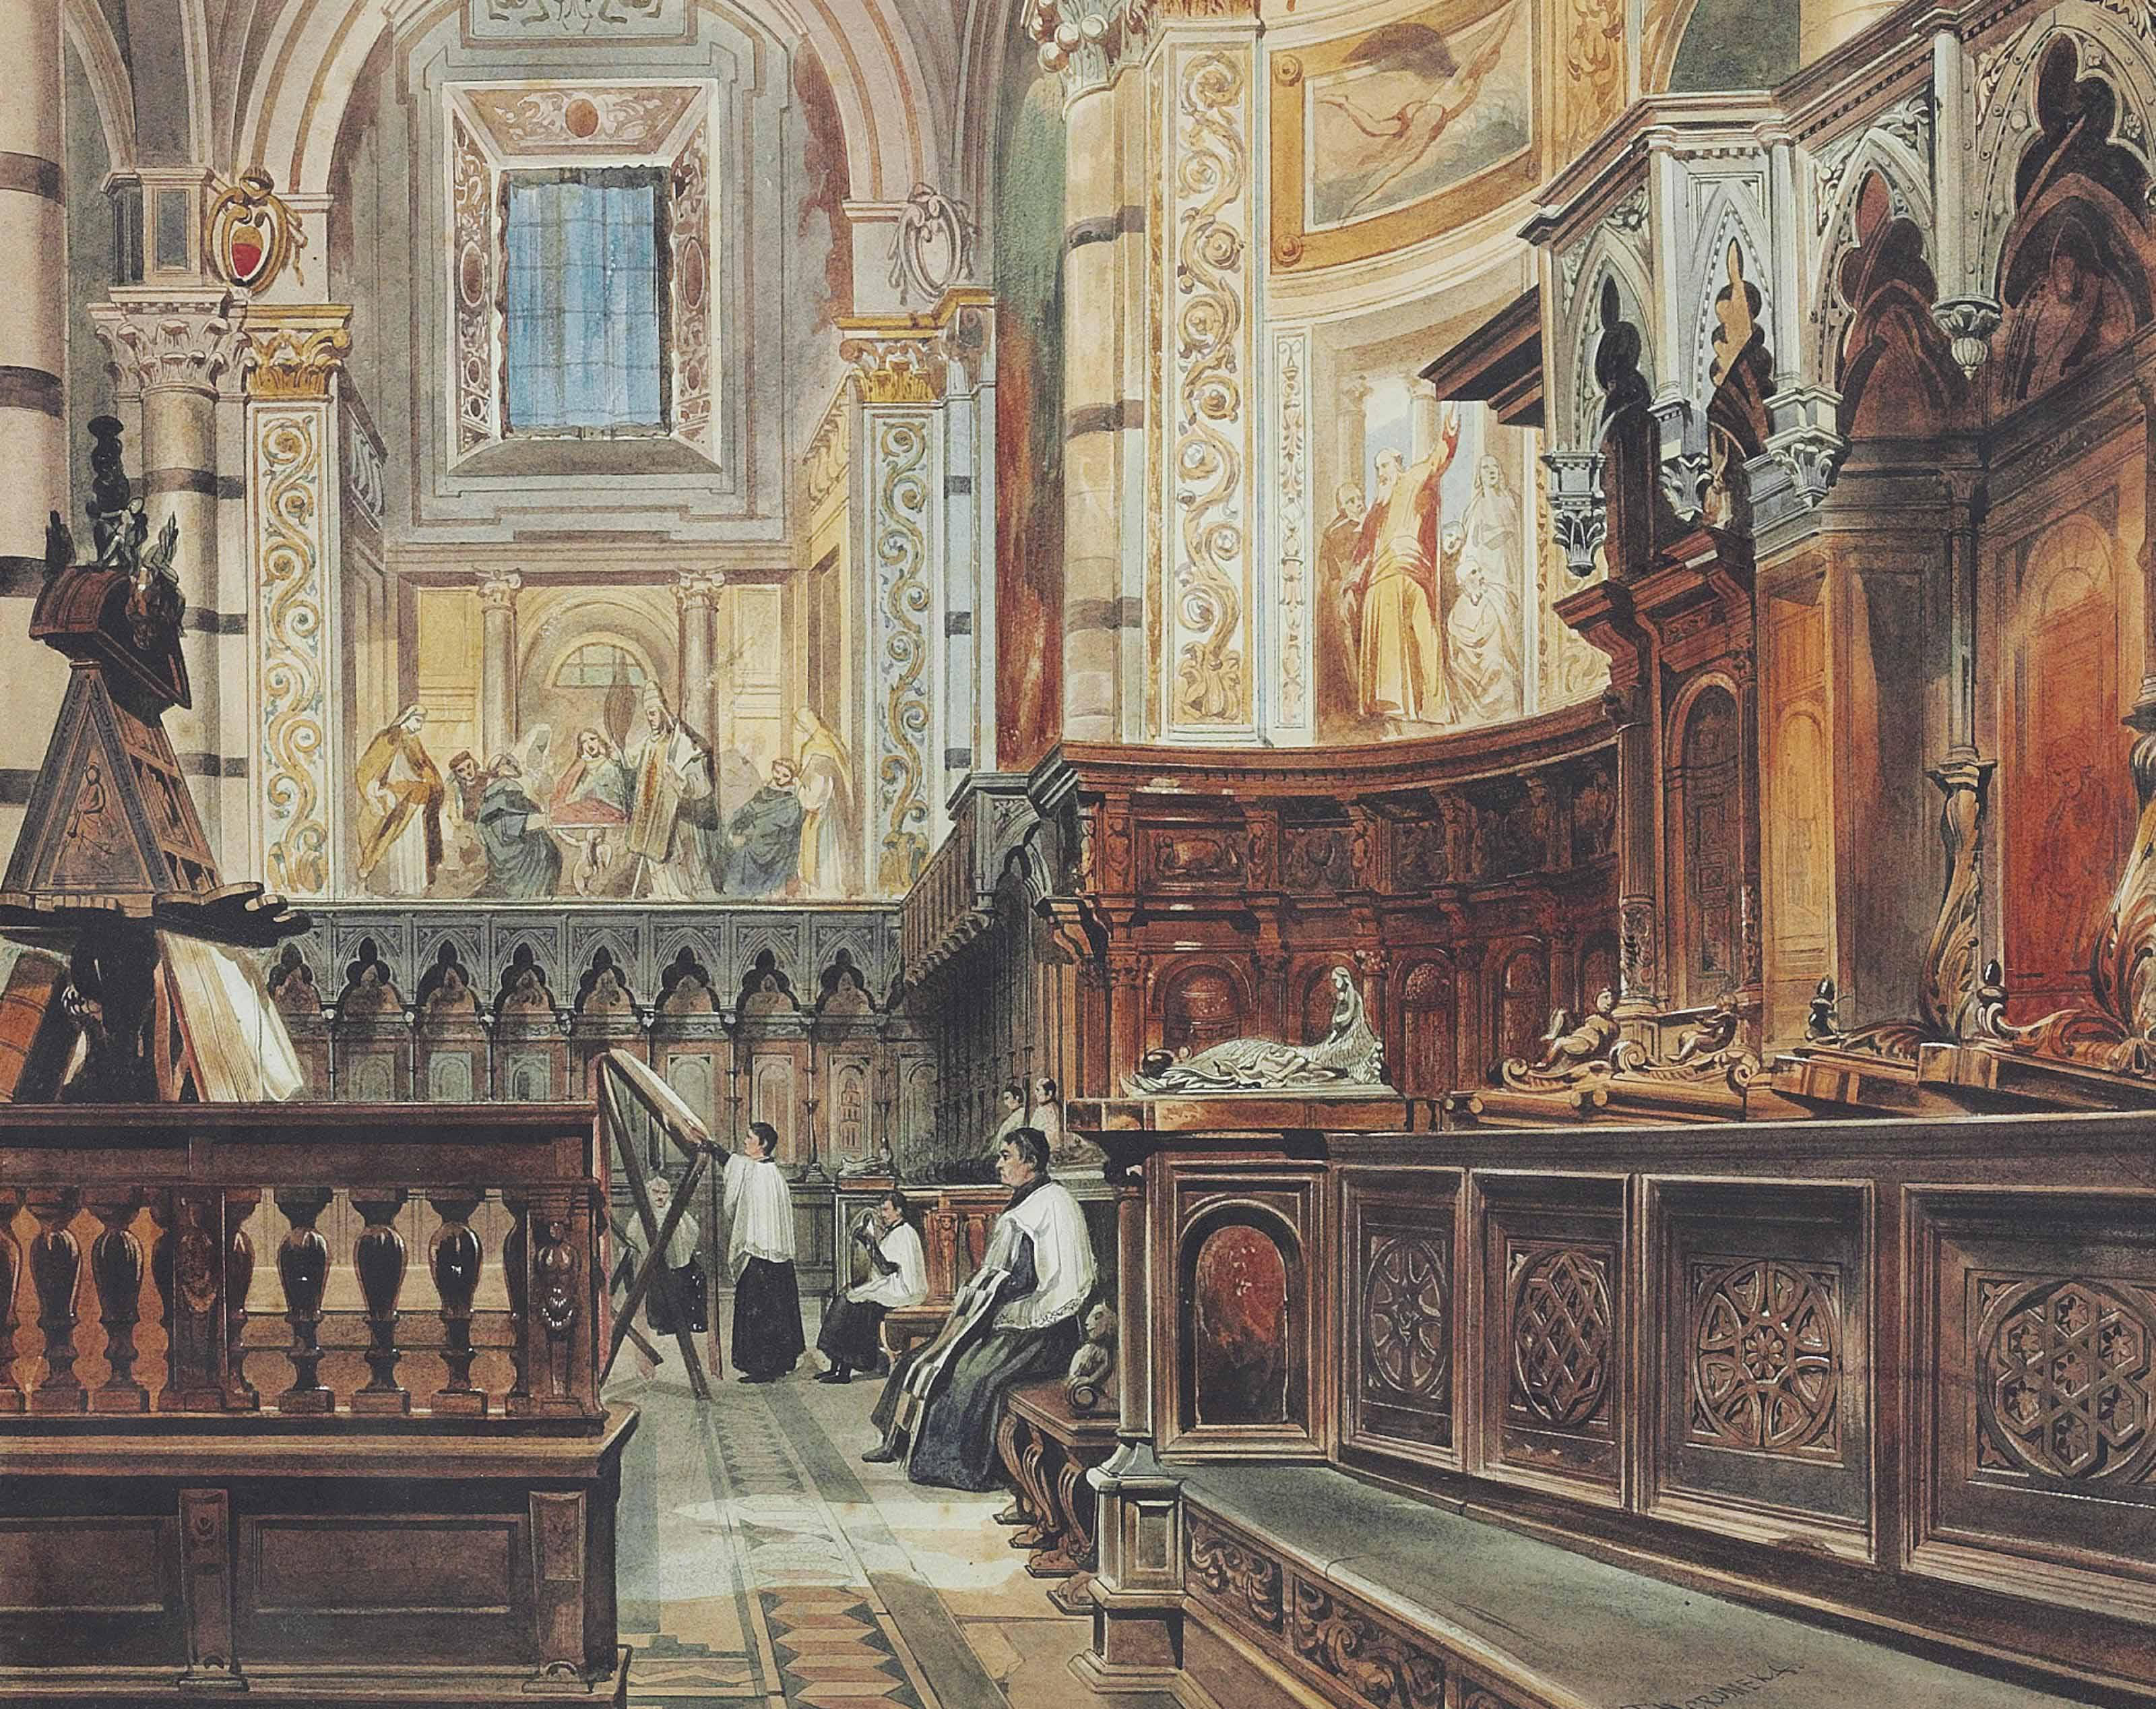 The interior of a church